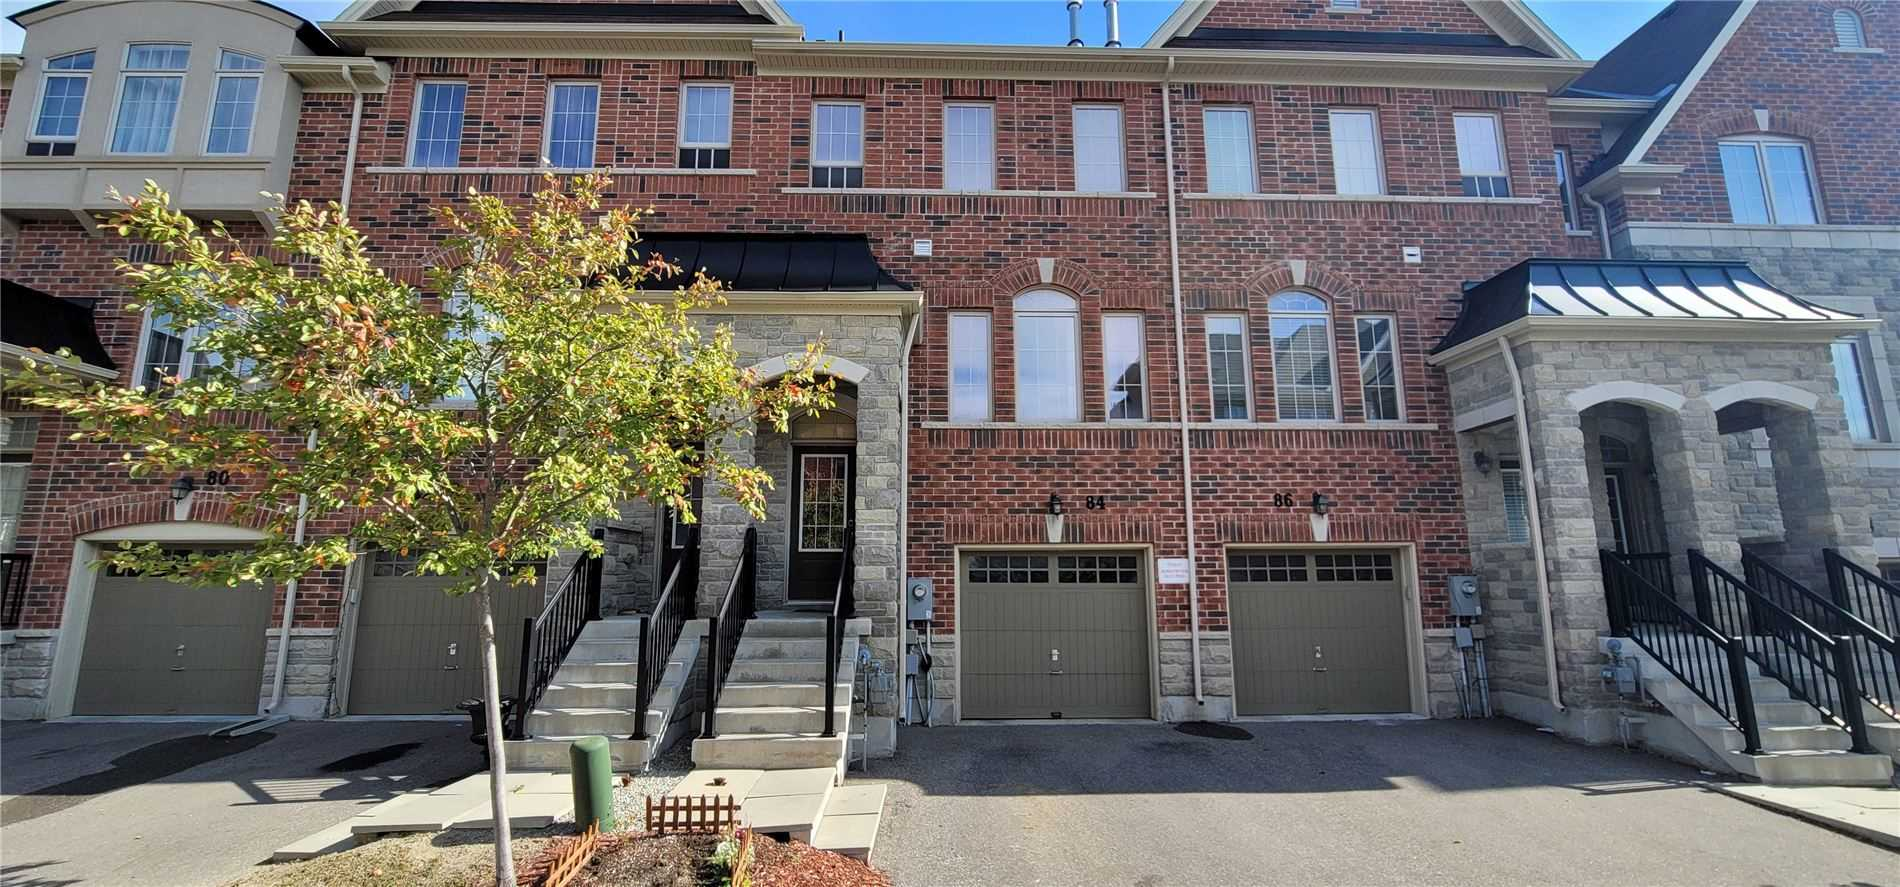 Upscale, Bright, Energy Efficient Open Concept Townhouse. Approx 2000 Sq F Of Finished Area With 9'' Ceilings. Perfect Location, Close To Public Transportation, Quiet, Kids Friendly Neighborhood, 3 Way Fireplace, Huge Windows Throughout, Hardwood Floors, S/S Appliances, Granite Countertop. Within Boundaries Of Trillium Woods Ps And Richmond Hill High School. Master Bedroom Ensuite With Double Sink And Glass Frame Shower